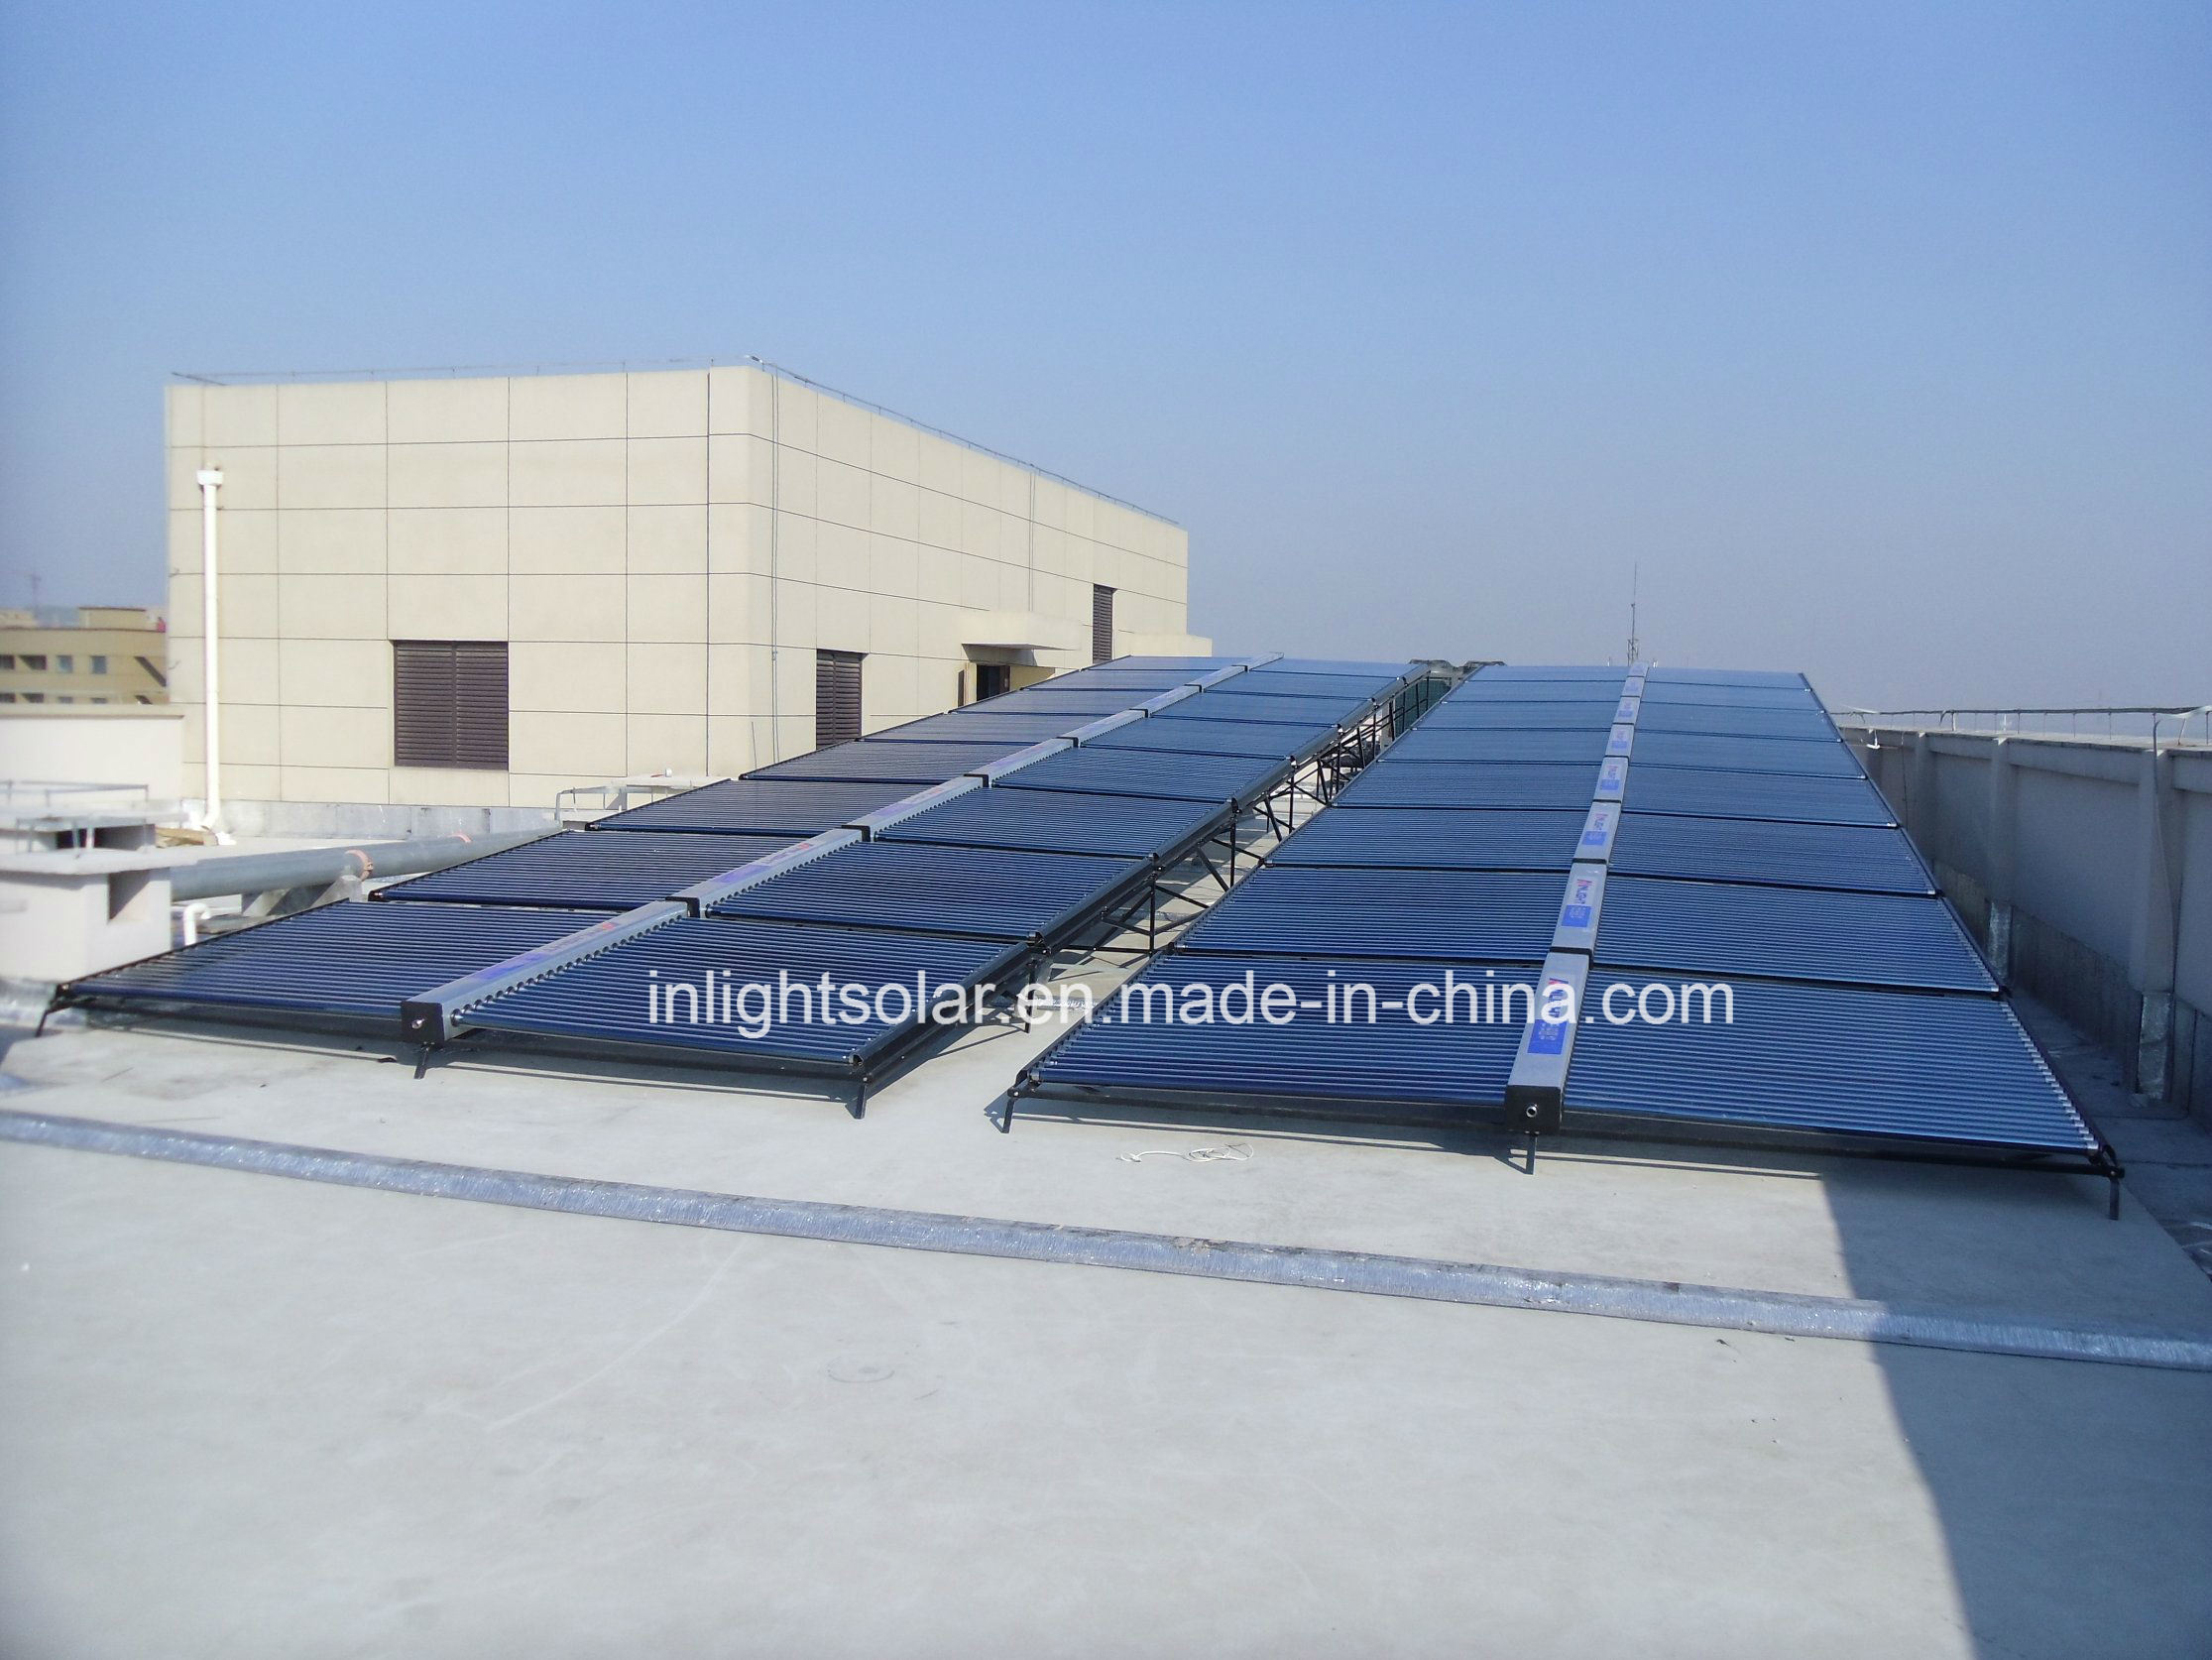 [Hot Item] Butterfly Type Vacuum Tube Solar Thermal Collector